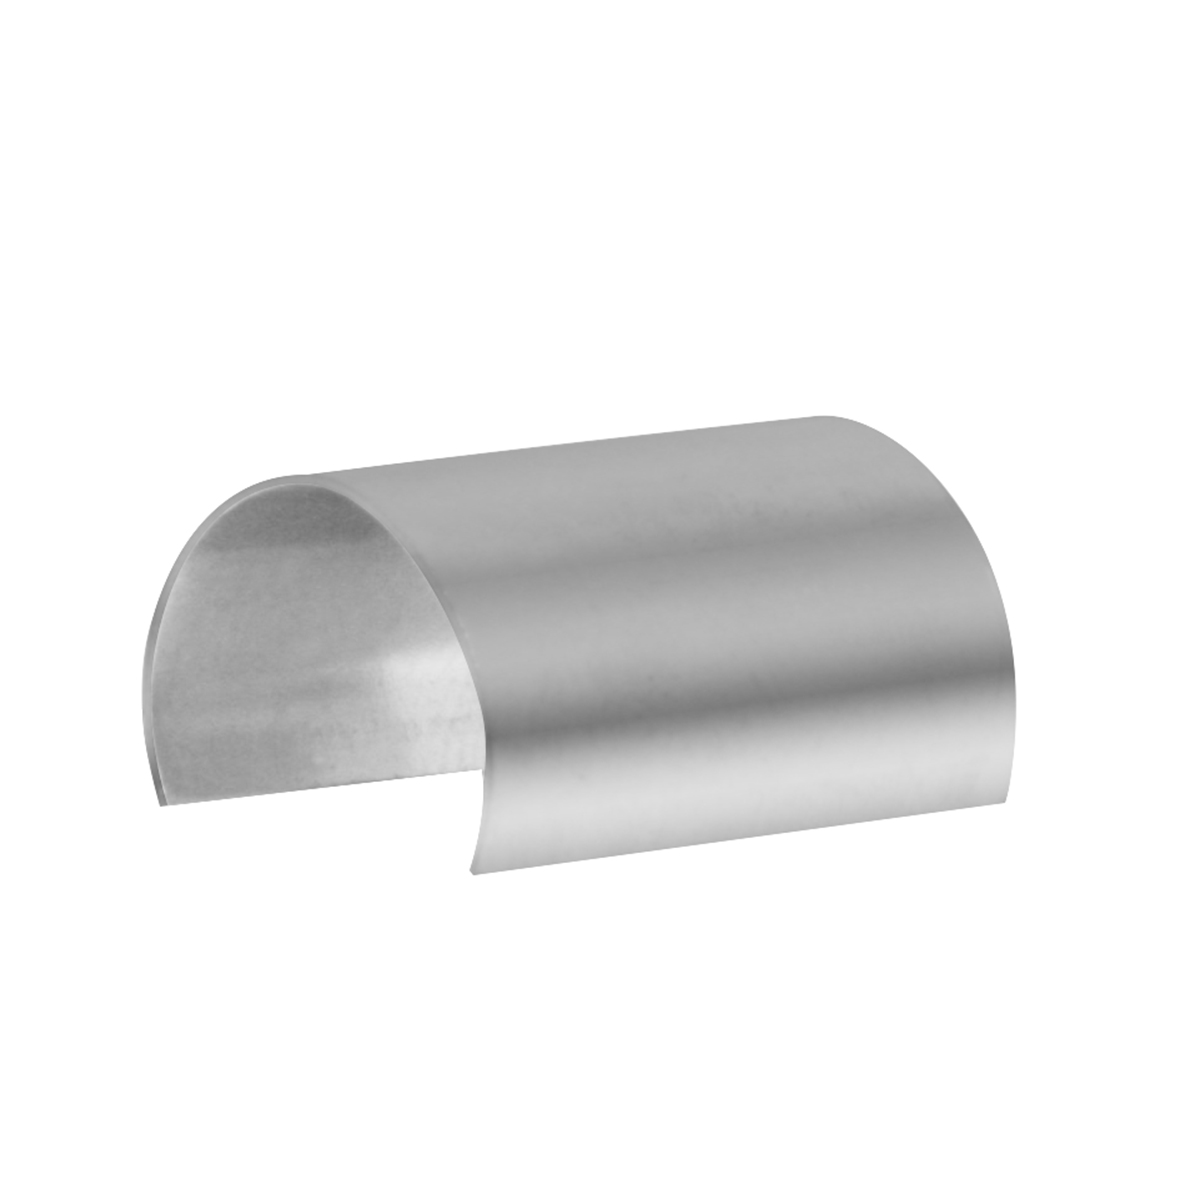 50171 Pete Stainless Steel Door Hinge Cover